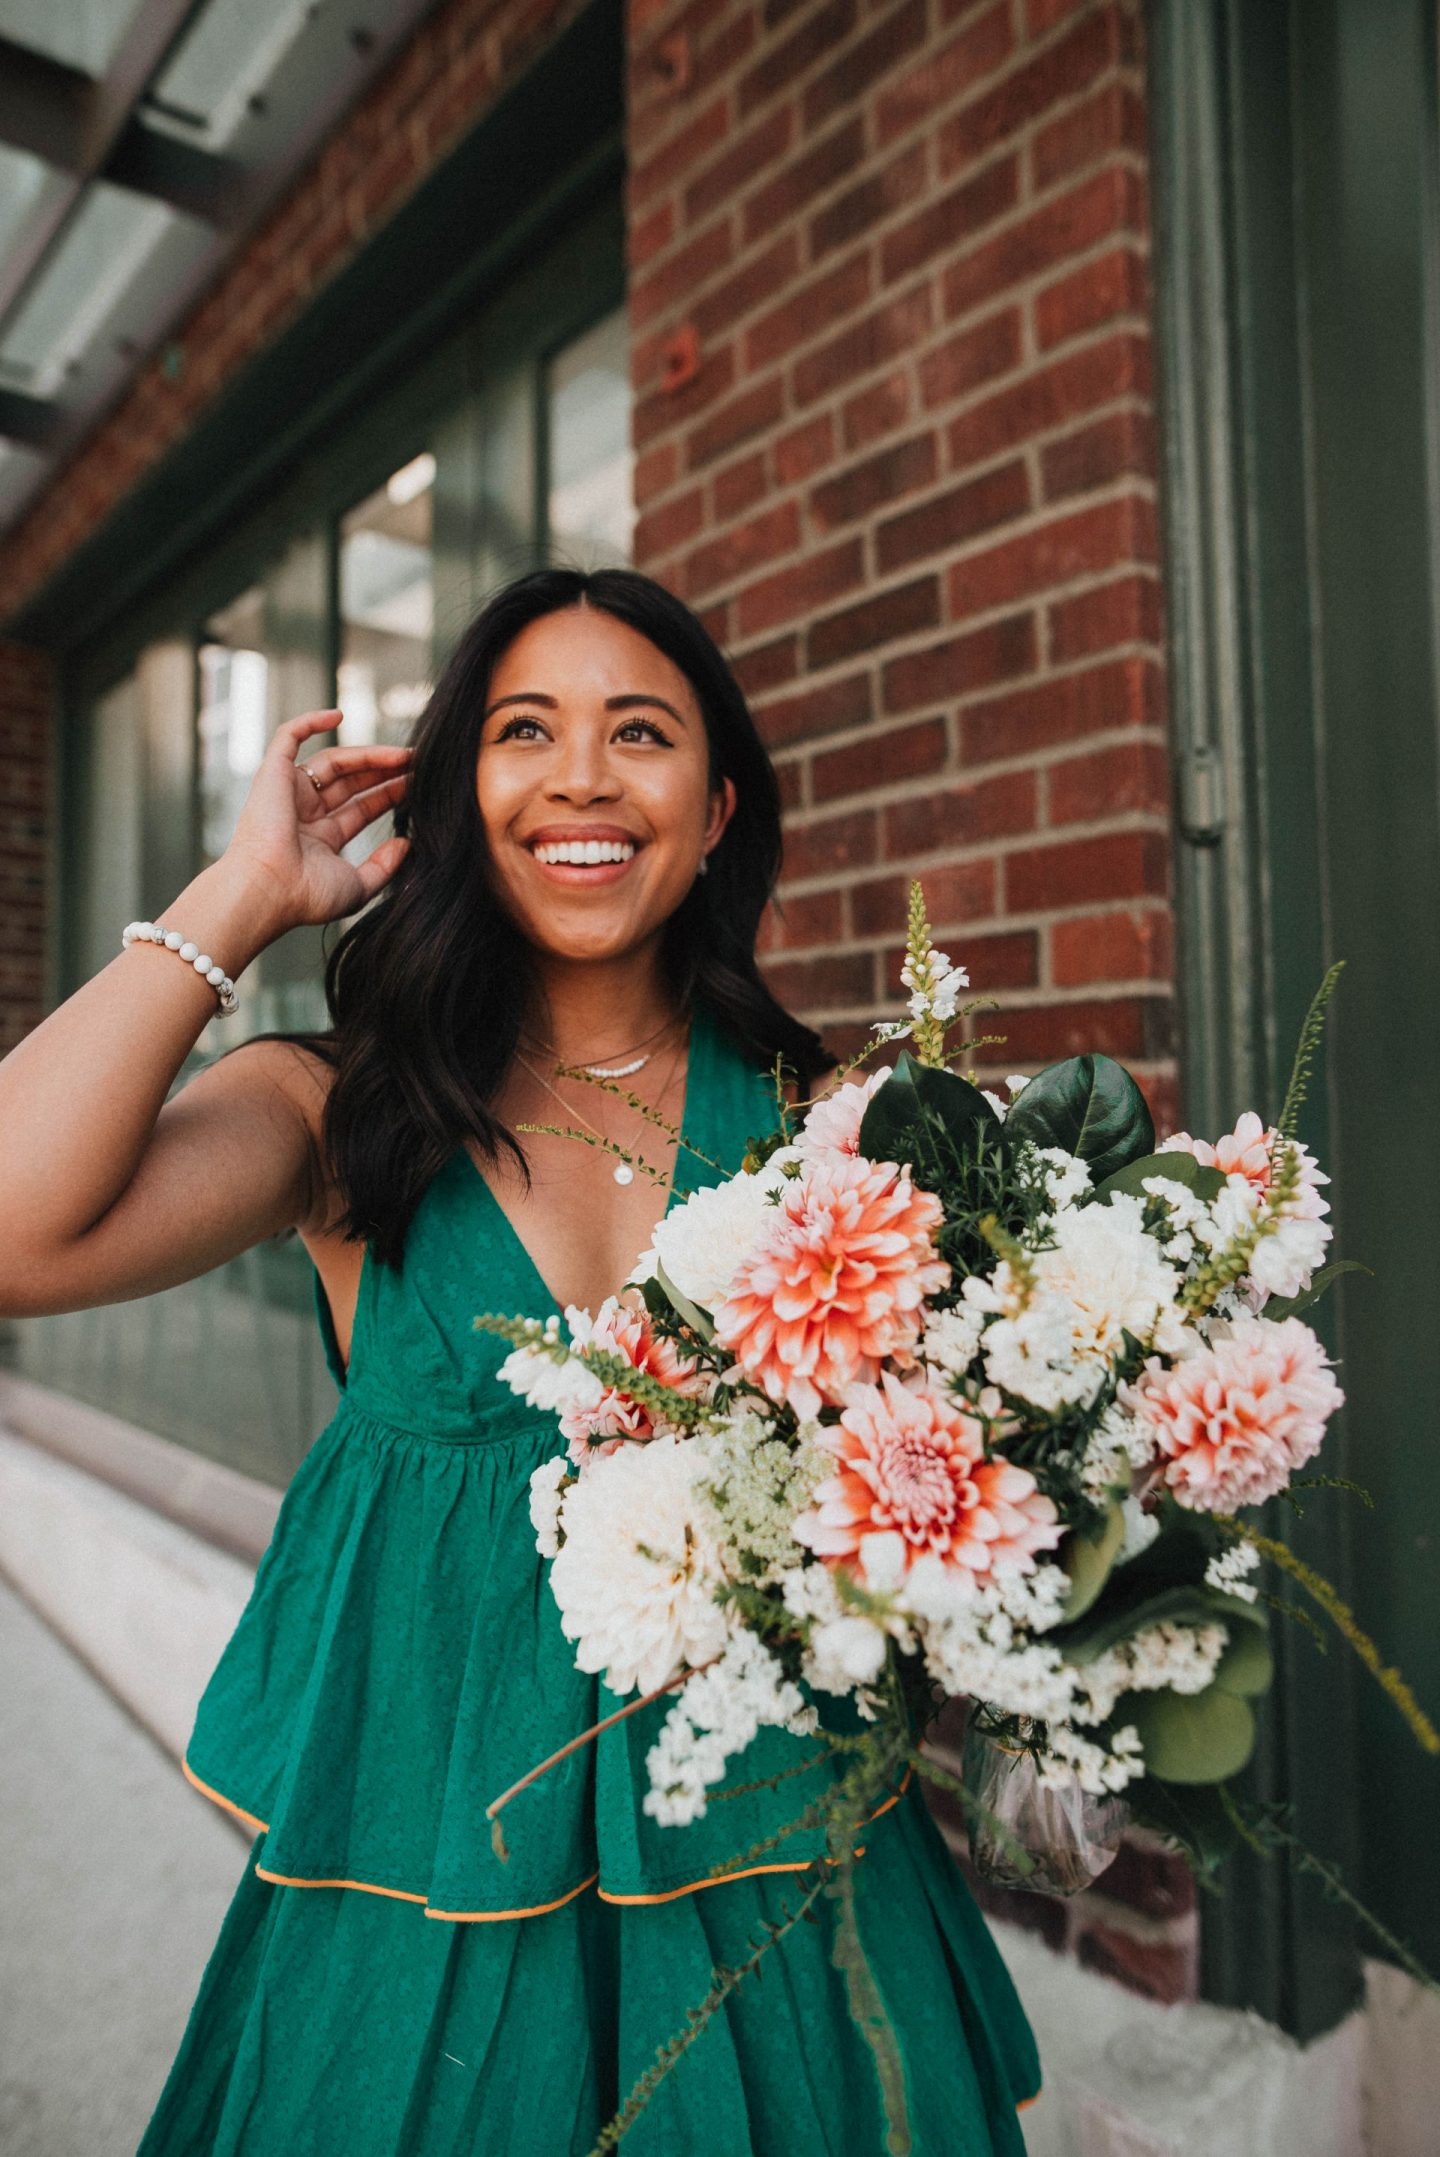 Emma's Edition - Pike Place Market Flowers - Petite Blogger - Petite Style